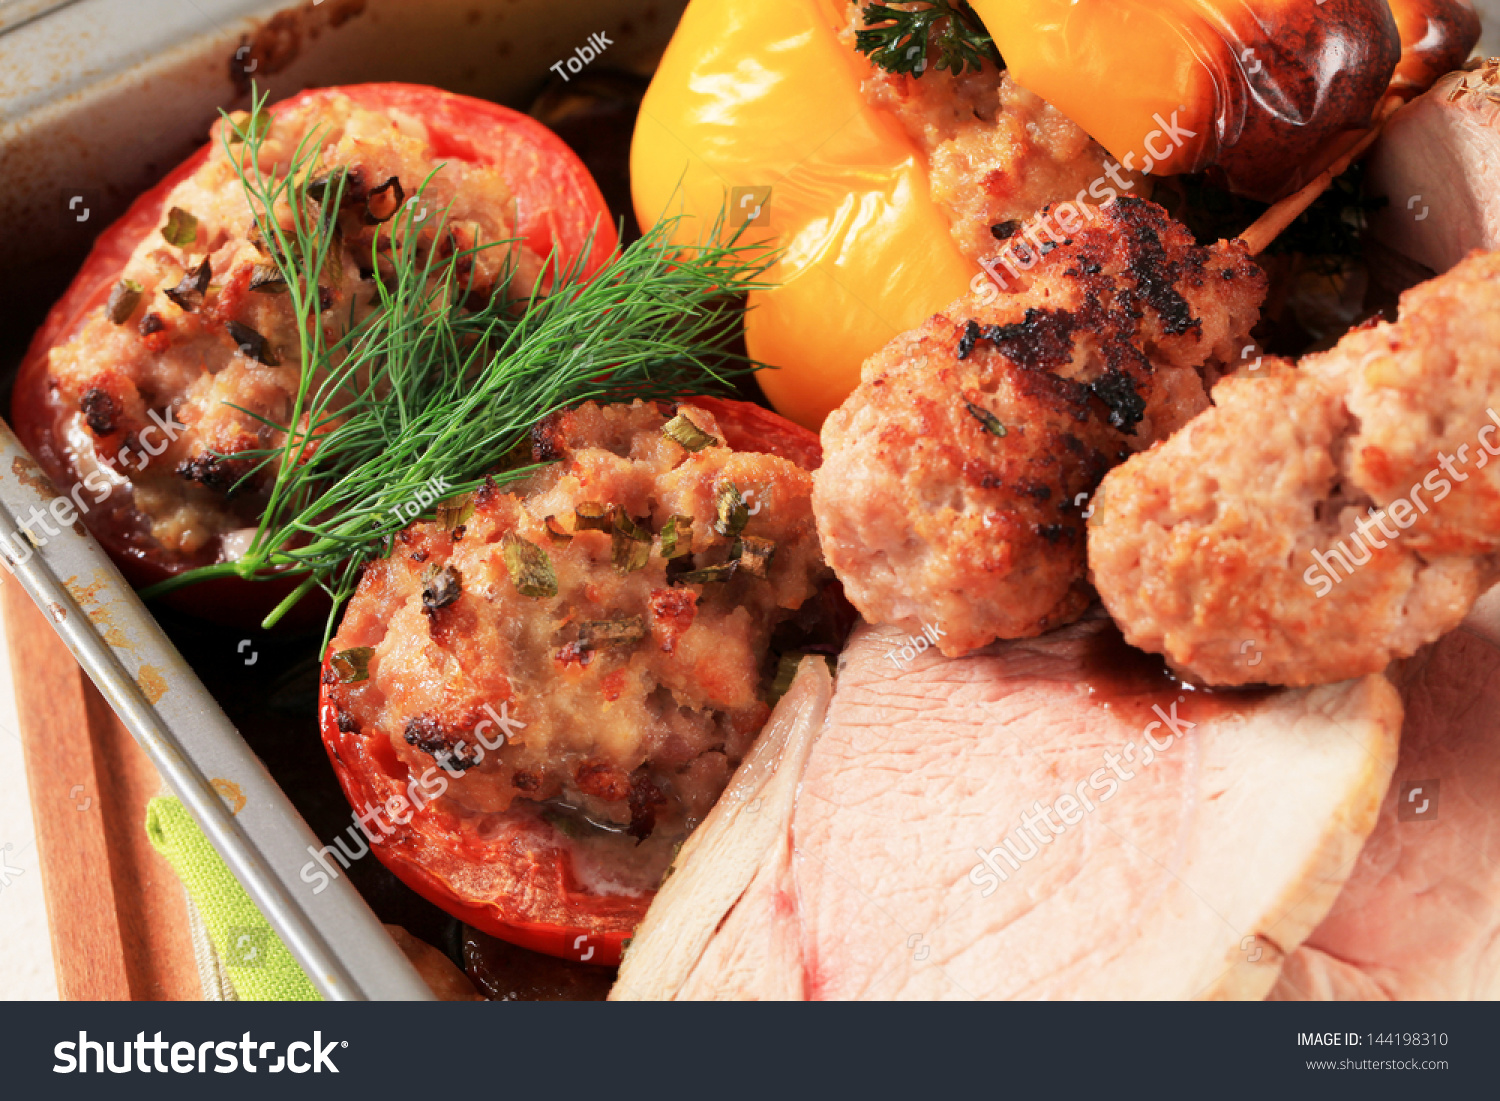 Delicious recipes for meat dishes: lyulya-kebab on pork mangal